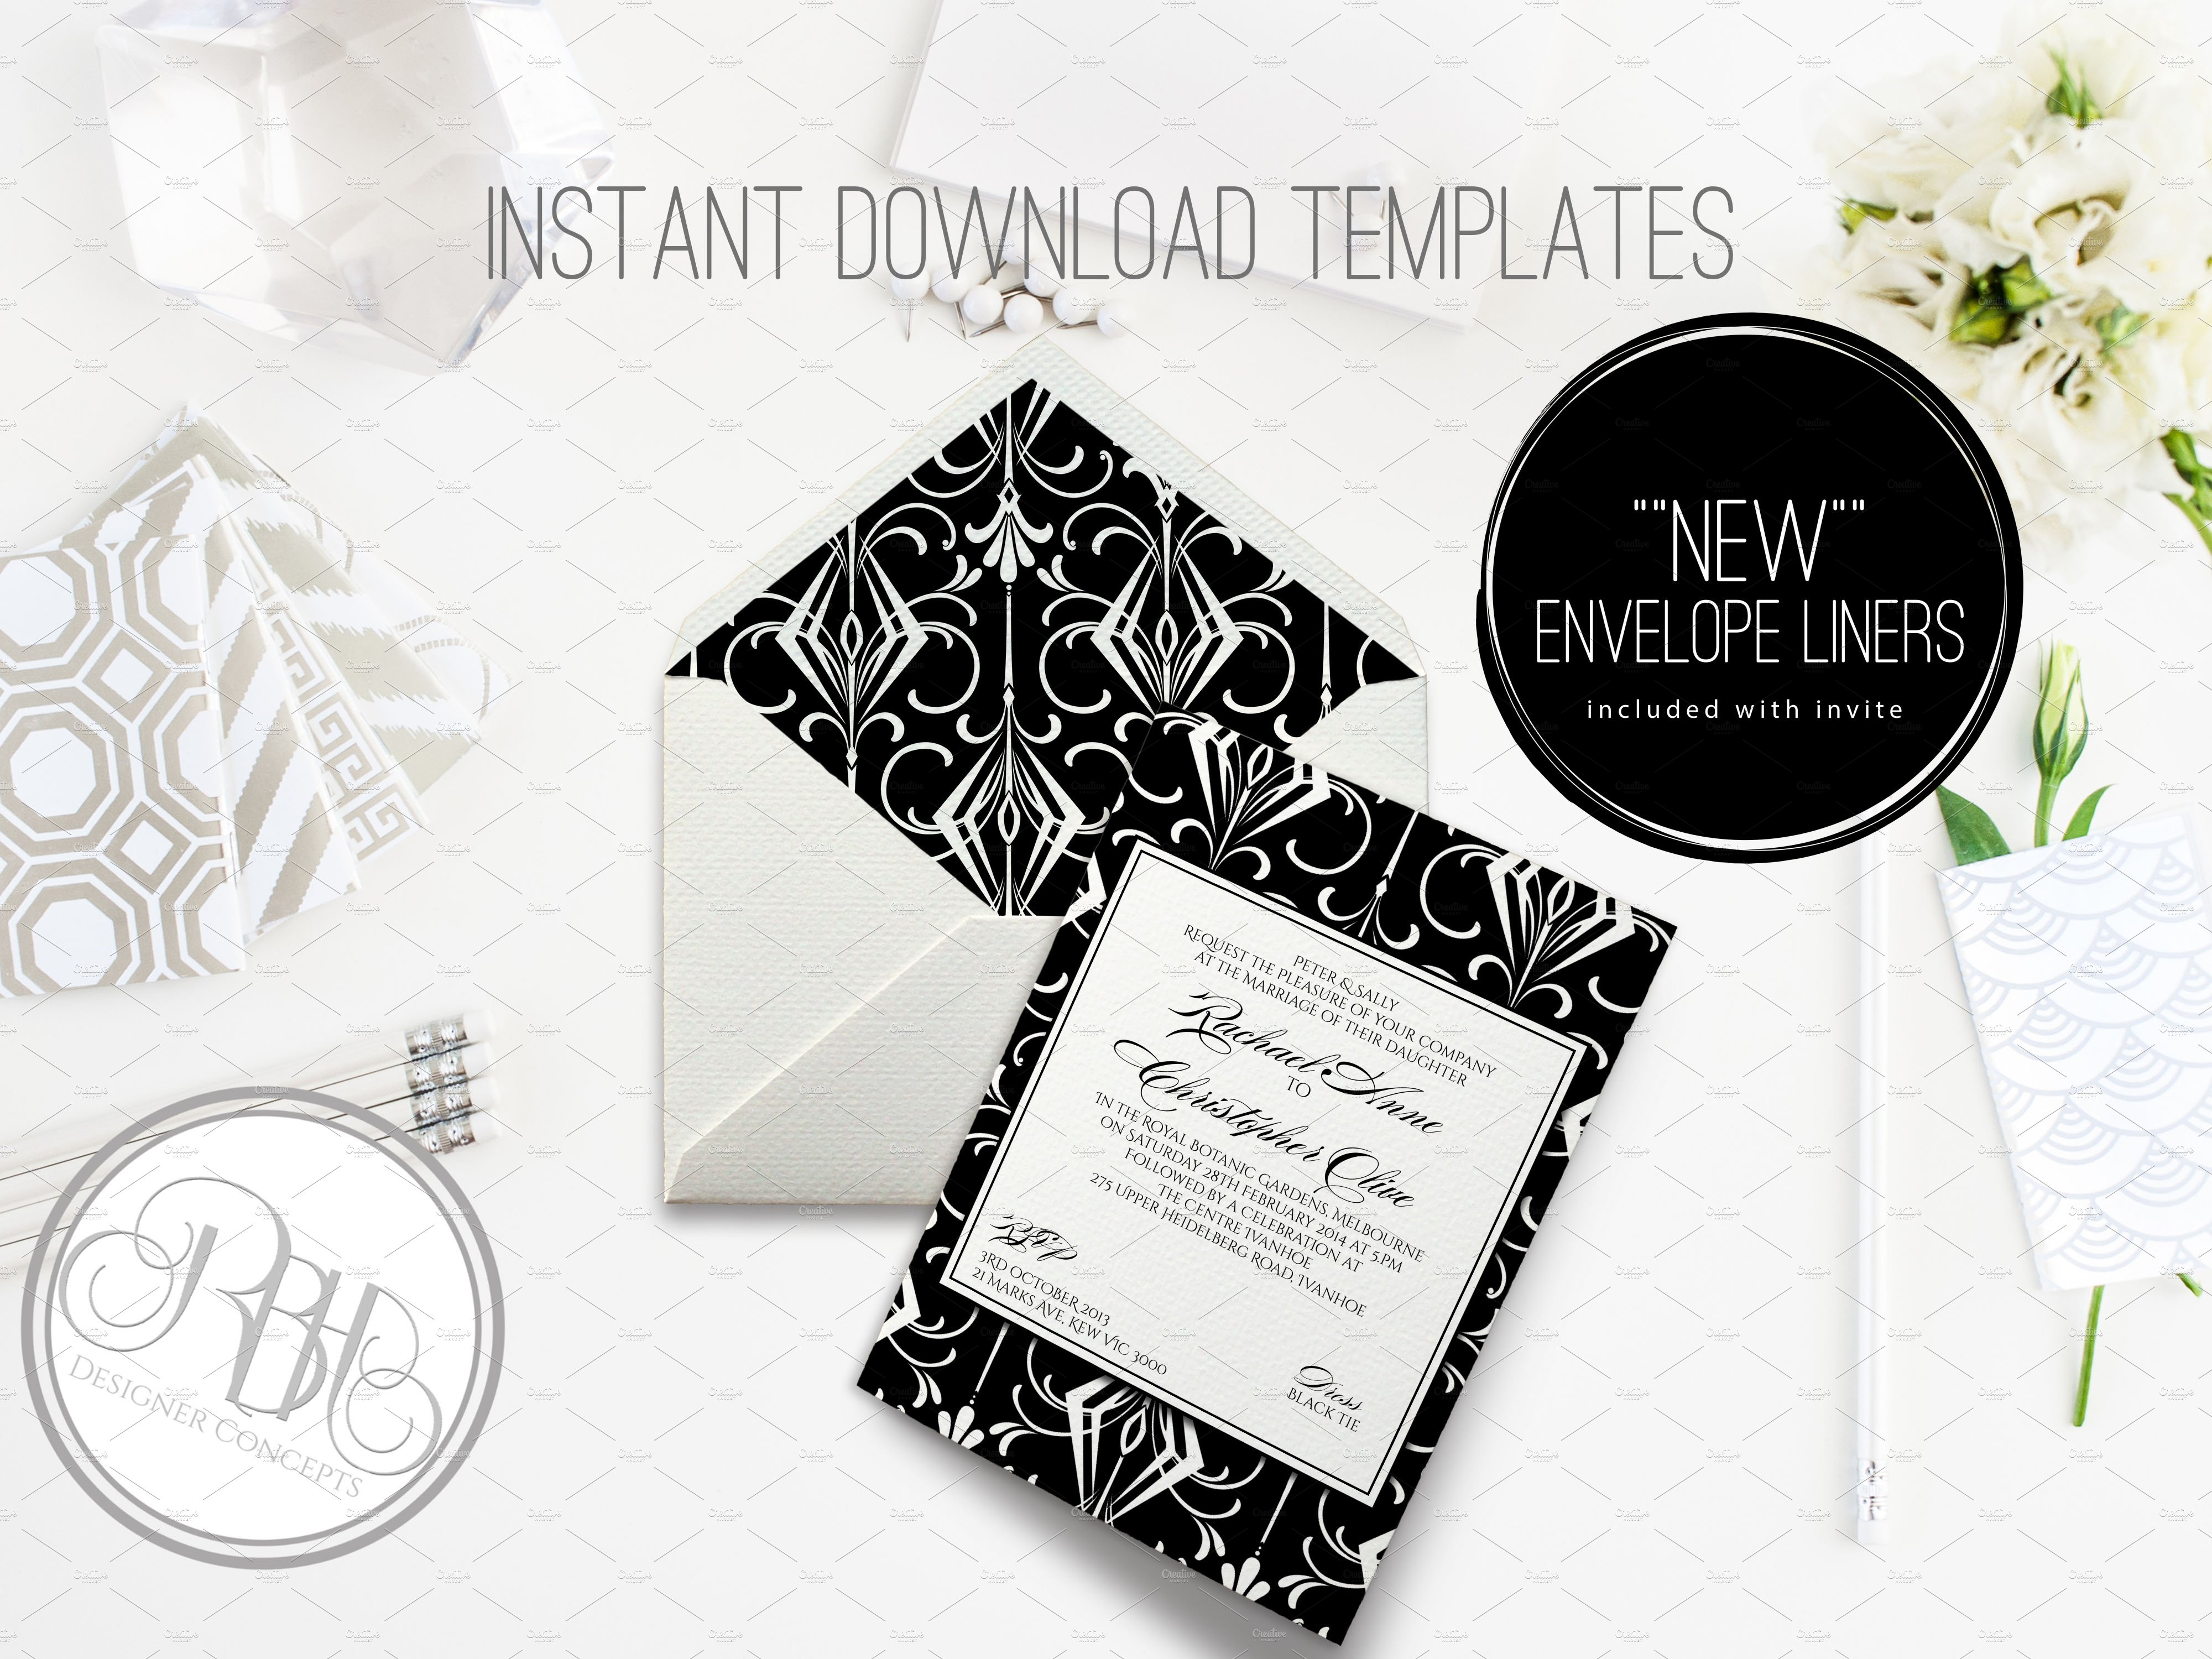 Fine A7 Envelope Printing Template Ensign - Examples Professional ...